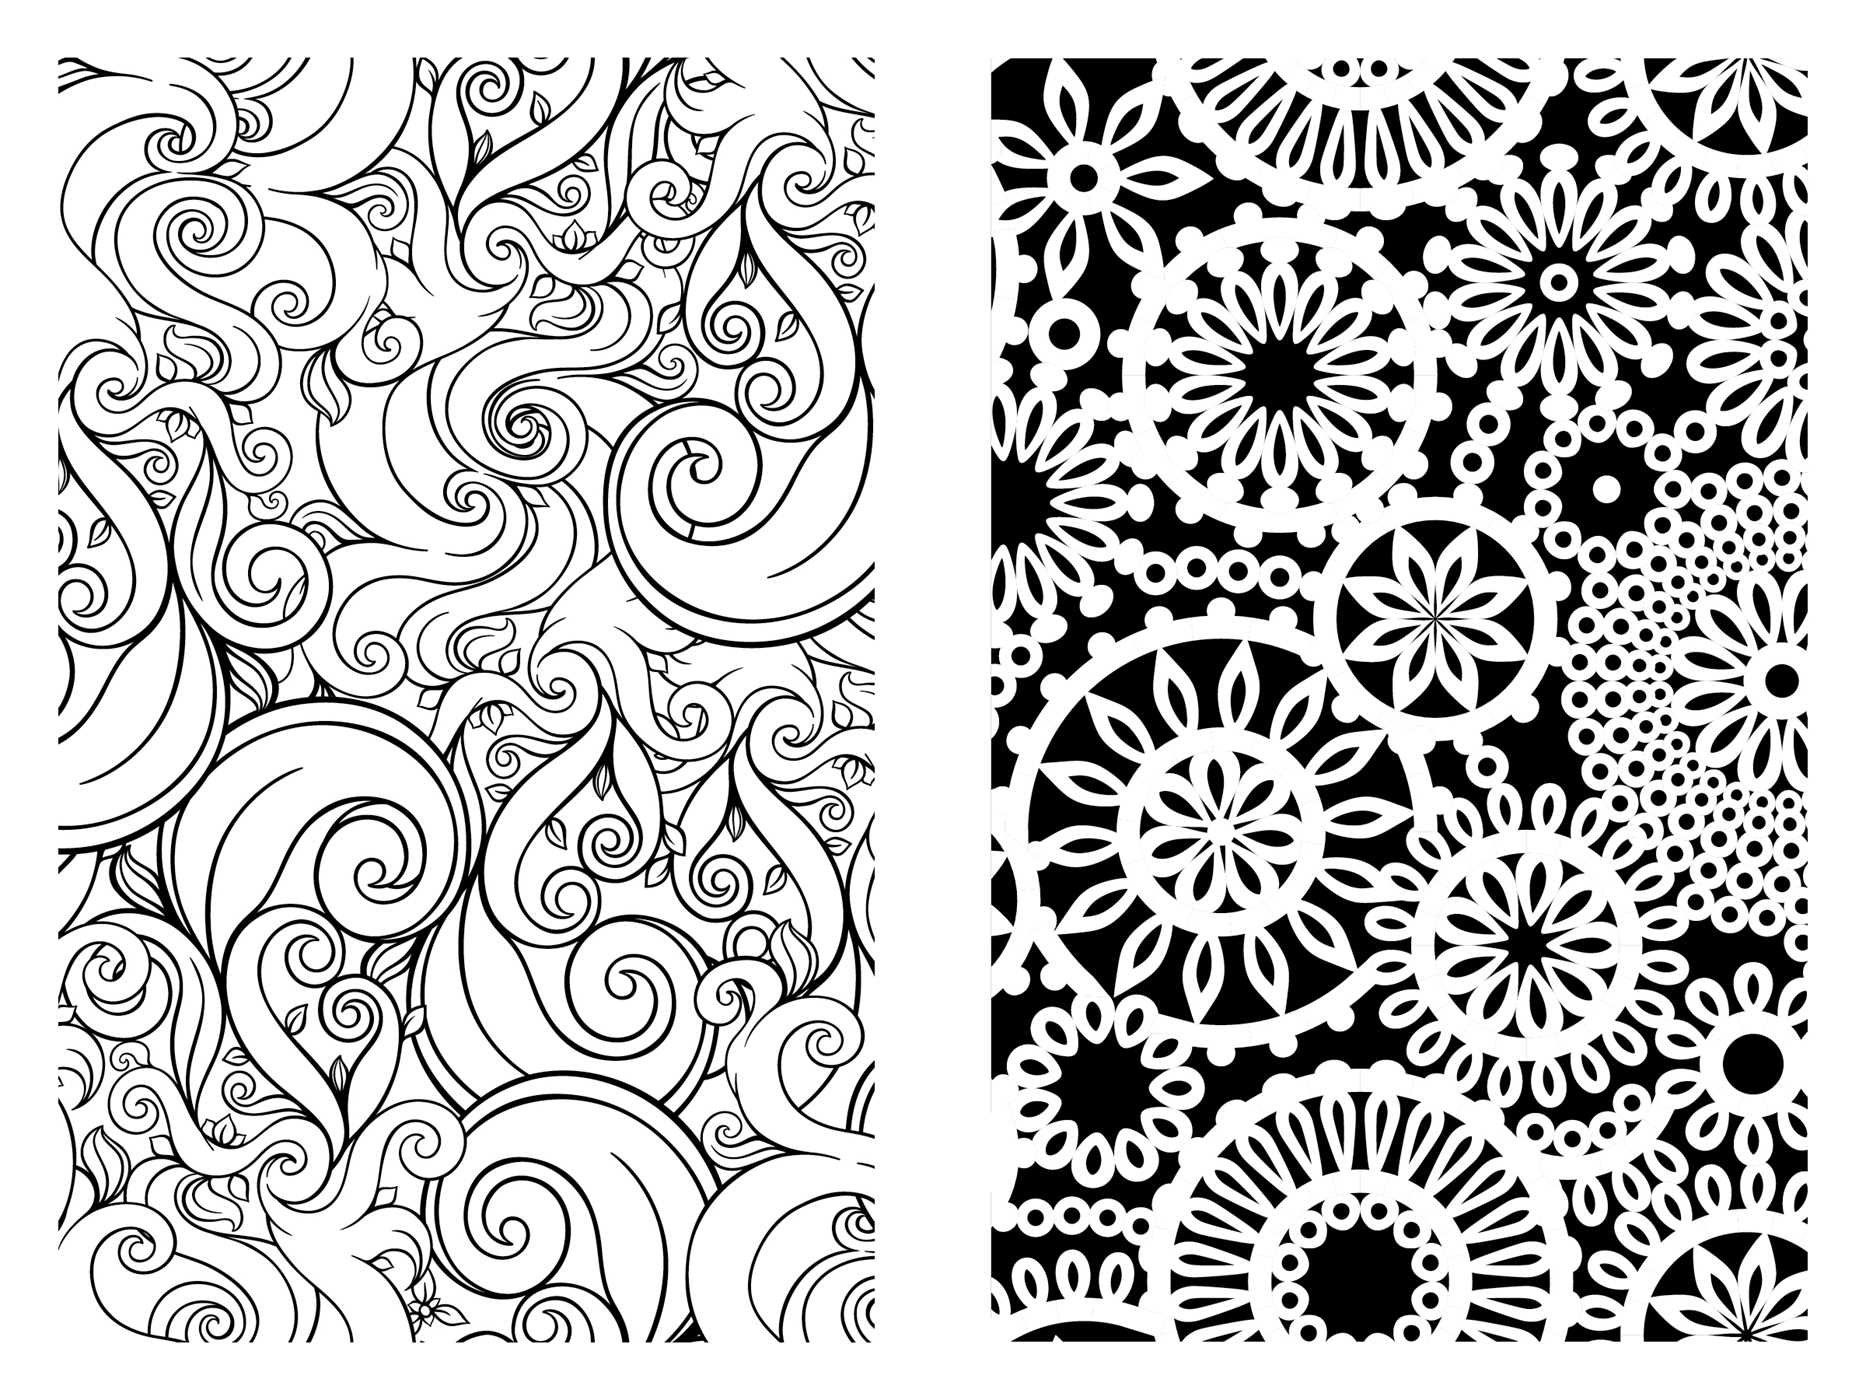 Mindfulness colouring sheets google search m a n d a l for Free mindfulness coloring pages